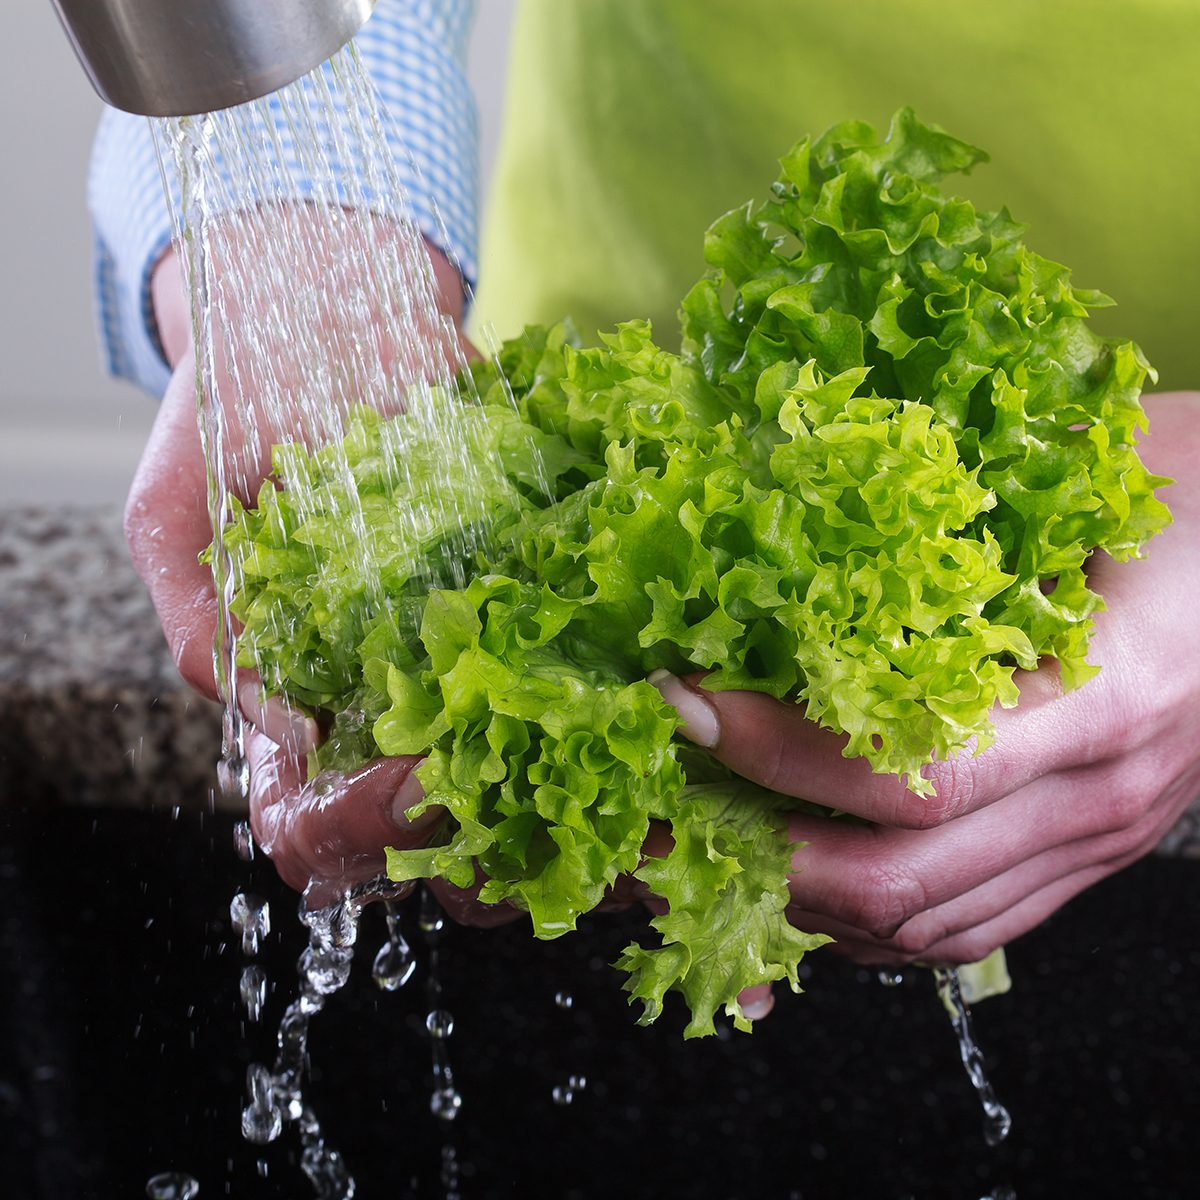 Housewife cleans a green salad in water